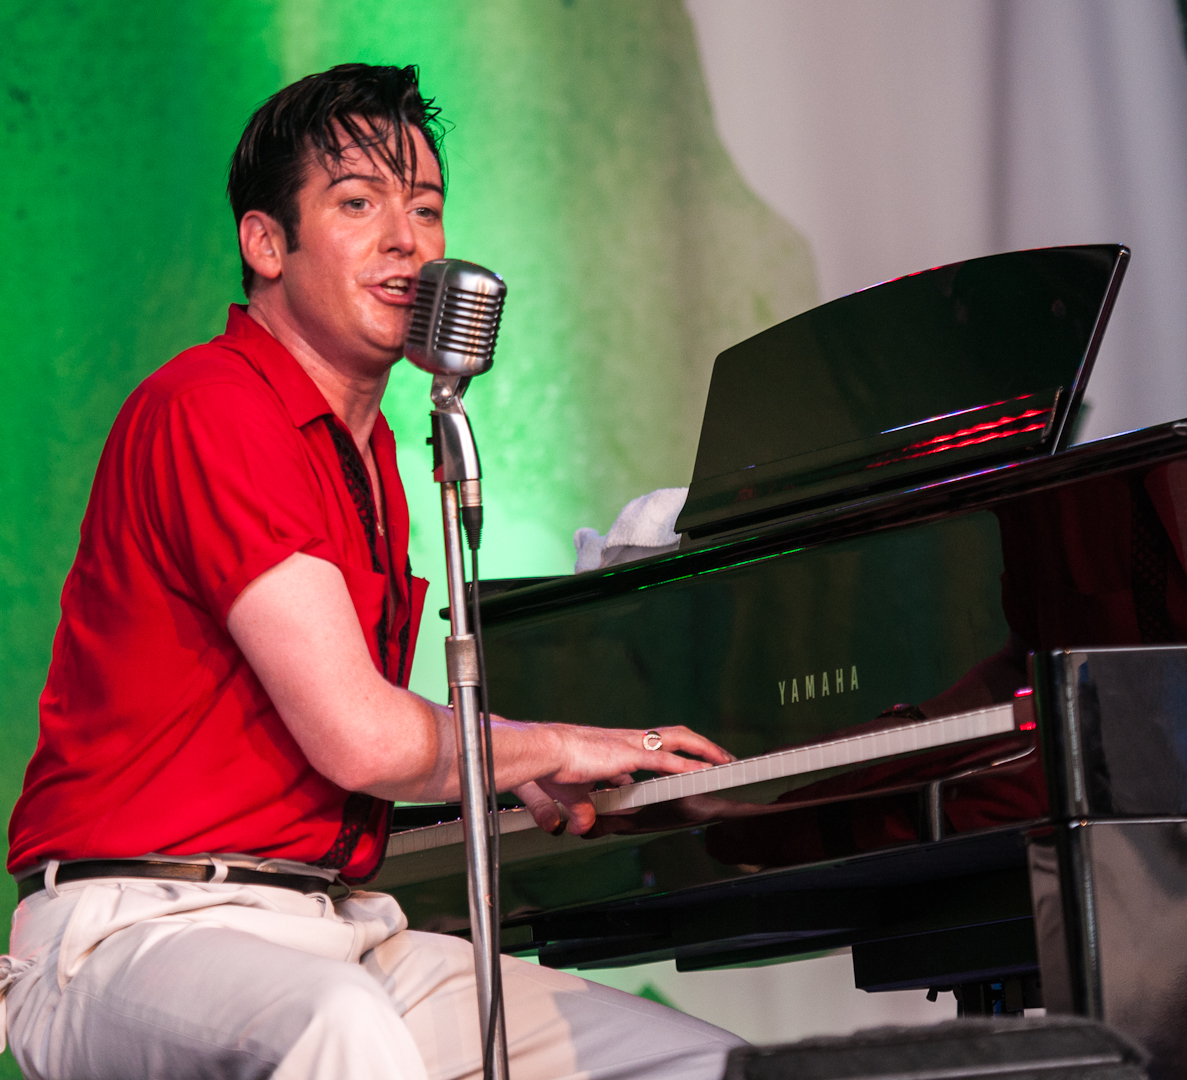 Israel Proulx at the Montreal International Jazz Festival 2012